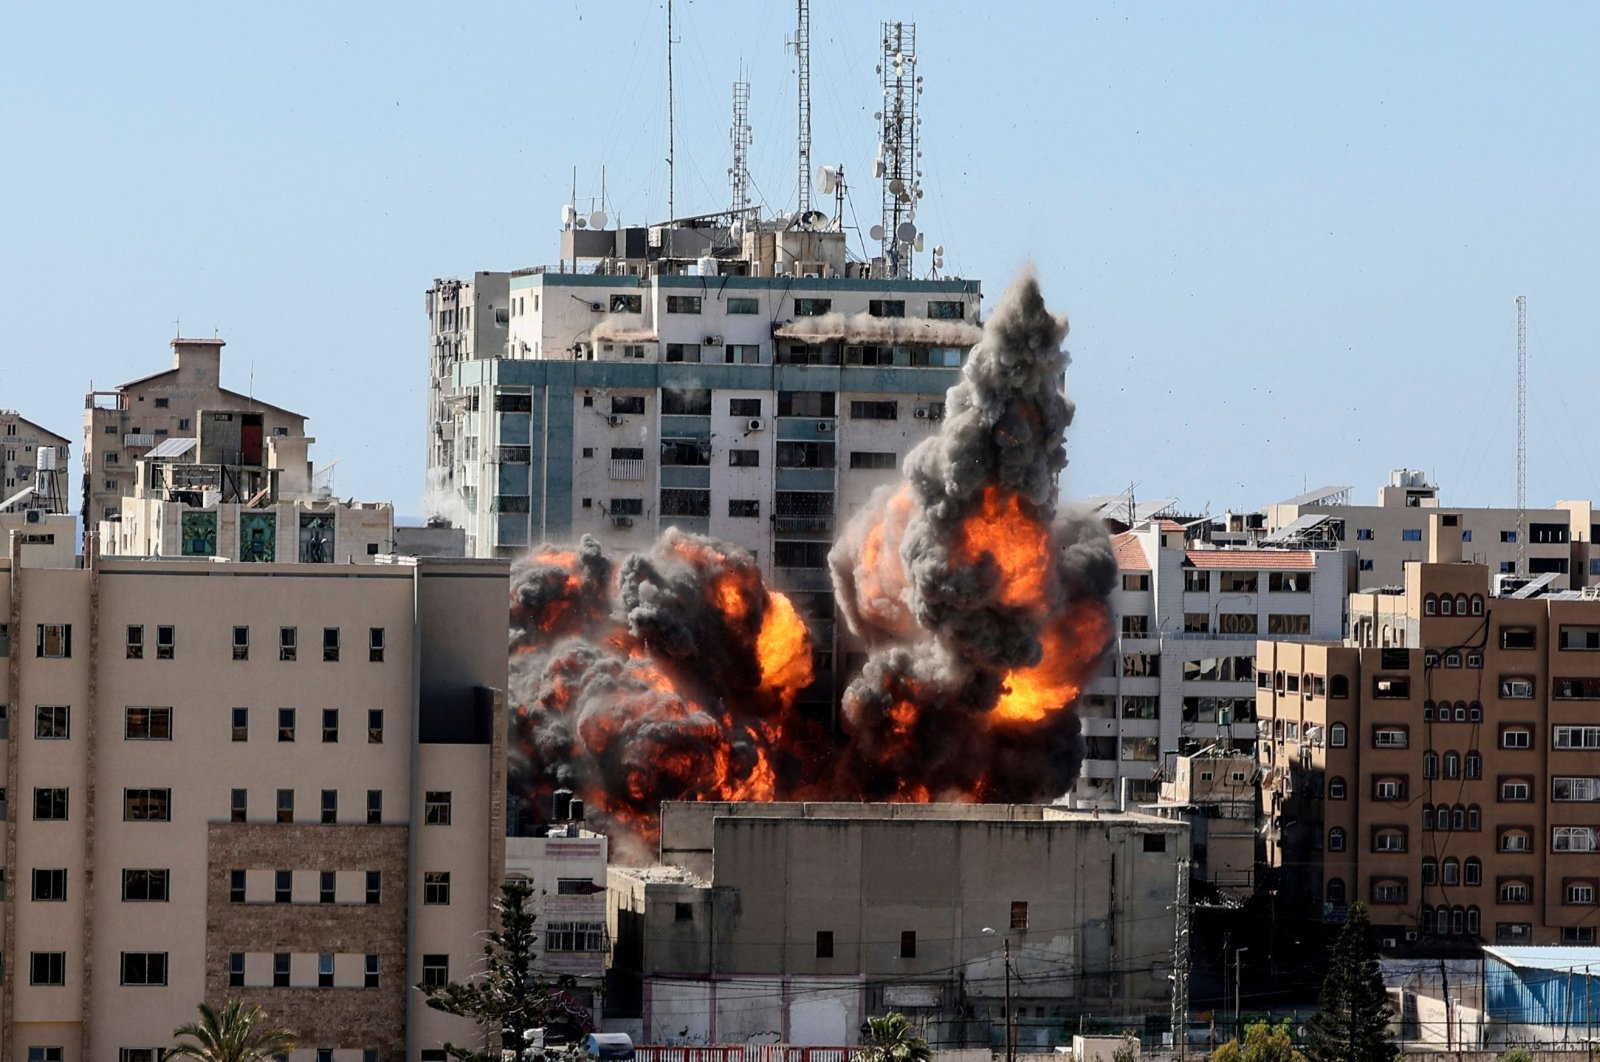 A ball of fire erupts from the Jala Tower as it is destroyed in an Israeli airstrike in Gaza City, Palestine, May 15, 2021. (AFP Photo)